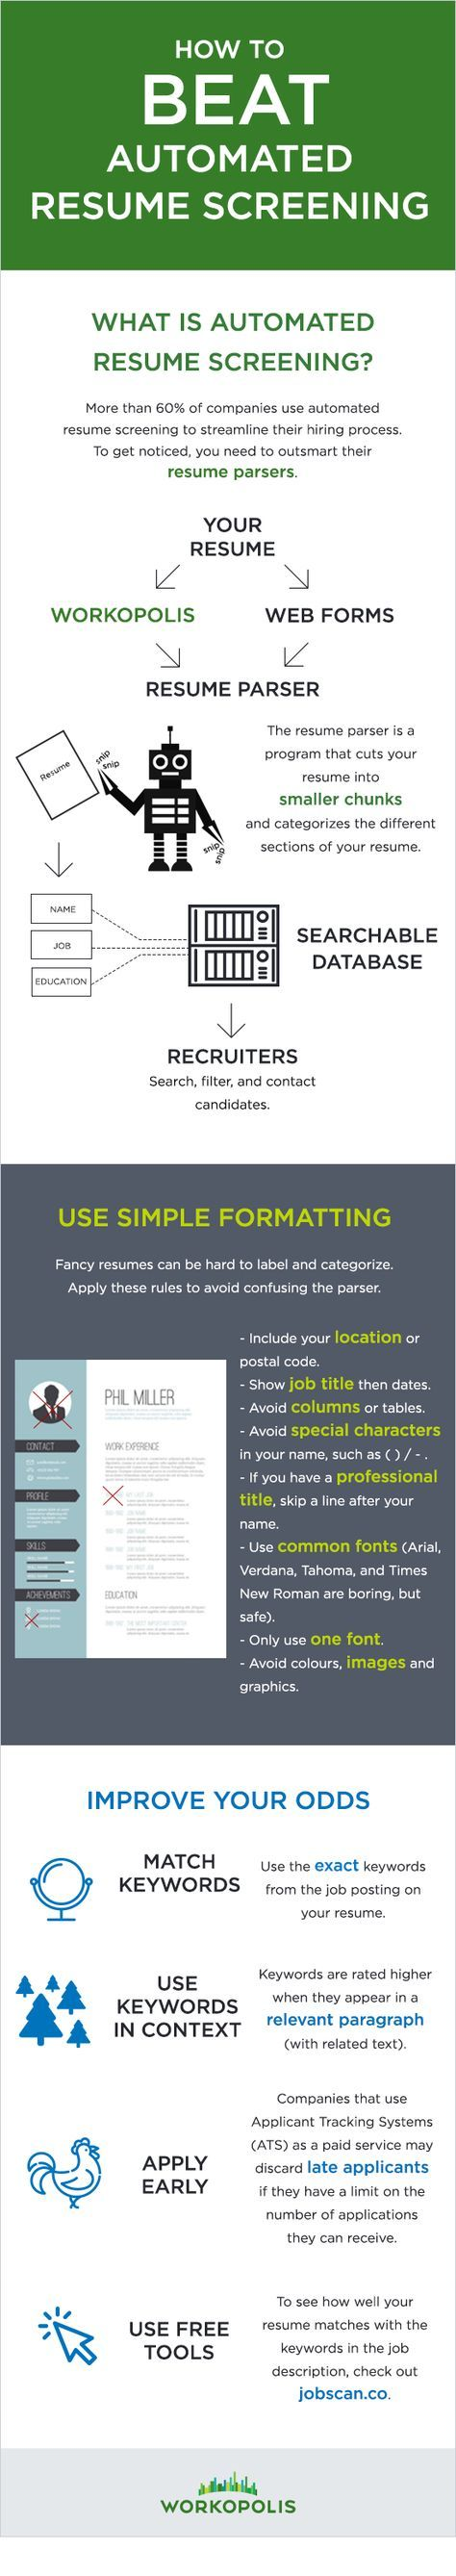 Best 25+ Resume Skills Ideas On Pinterest | Resume, Job Search And Resume  Builder Template  Examples Of Skills For A Resume